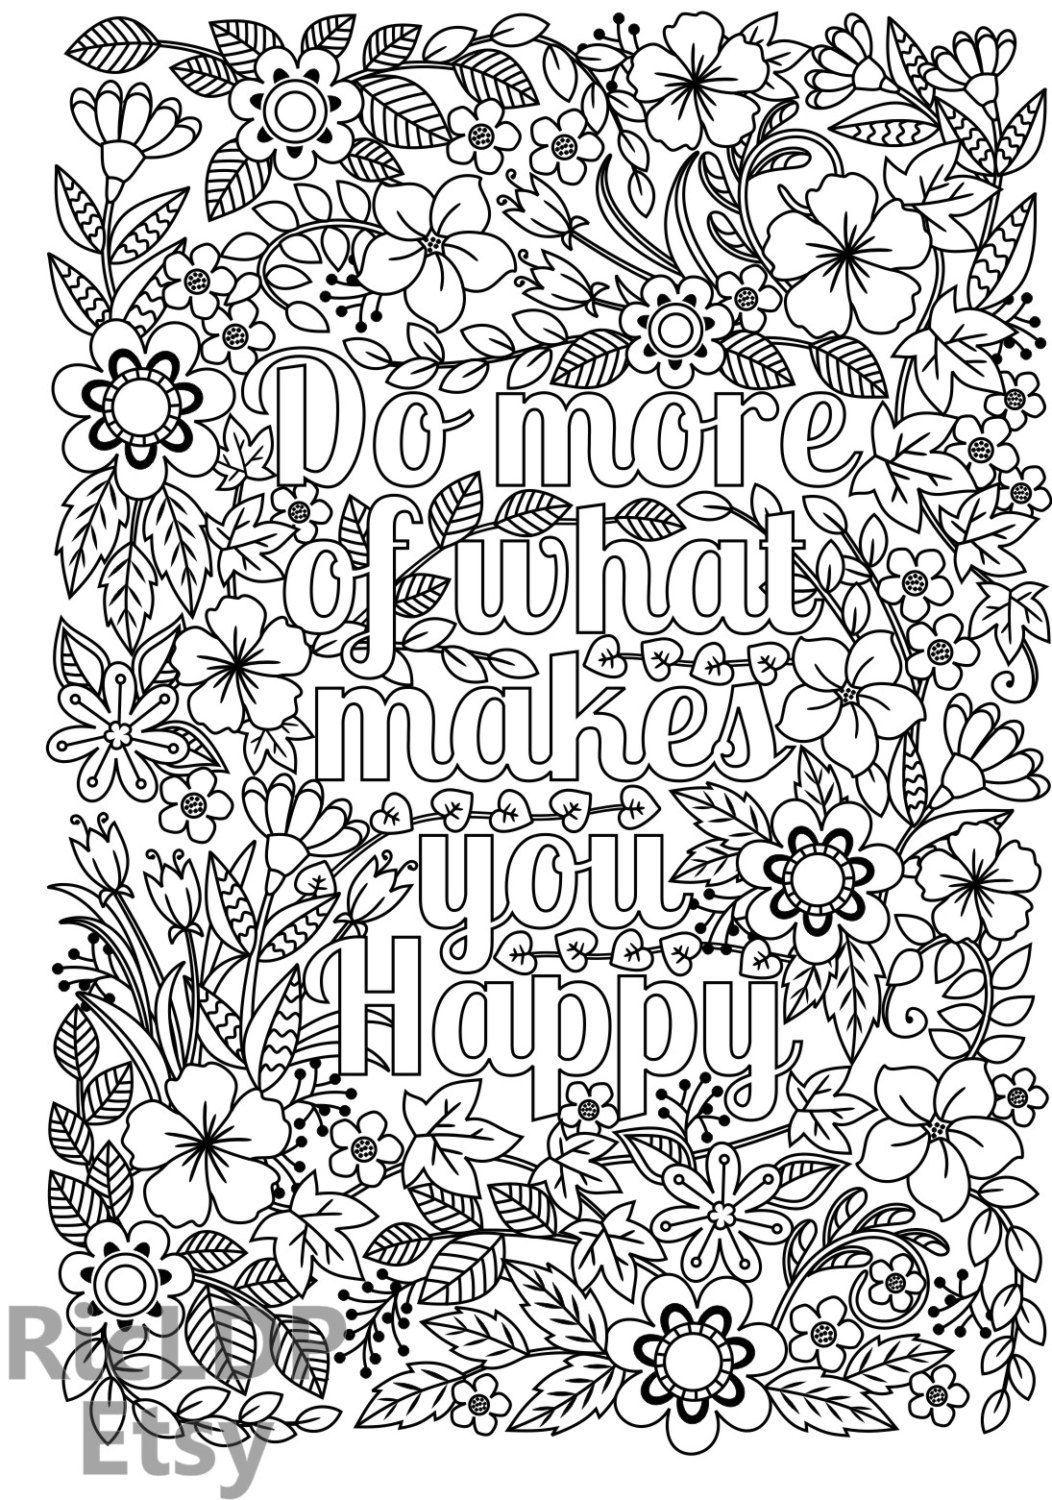 Do More of What Makes You Happy - Coloring Page for Kids ... | fun printable coloring pages for adults